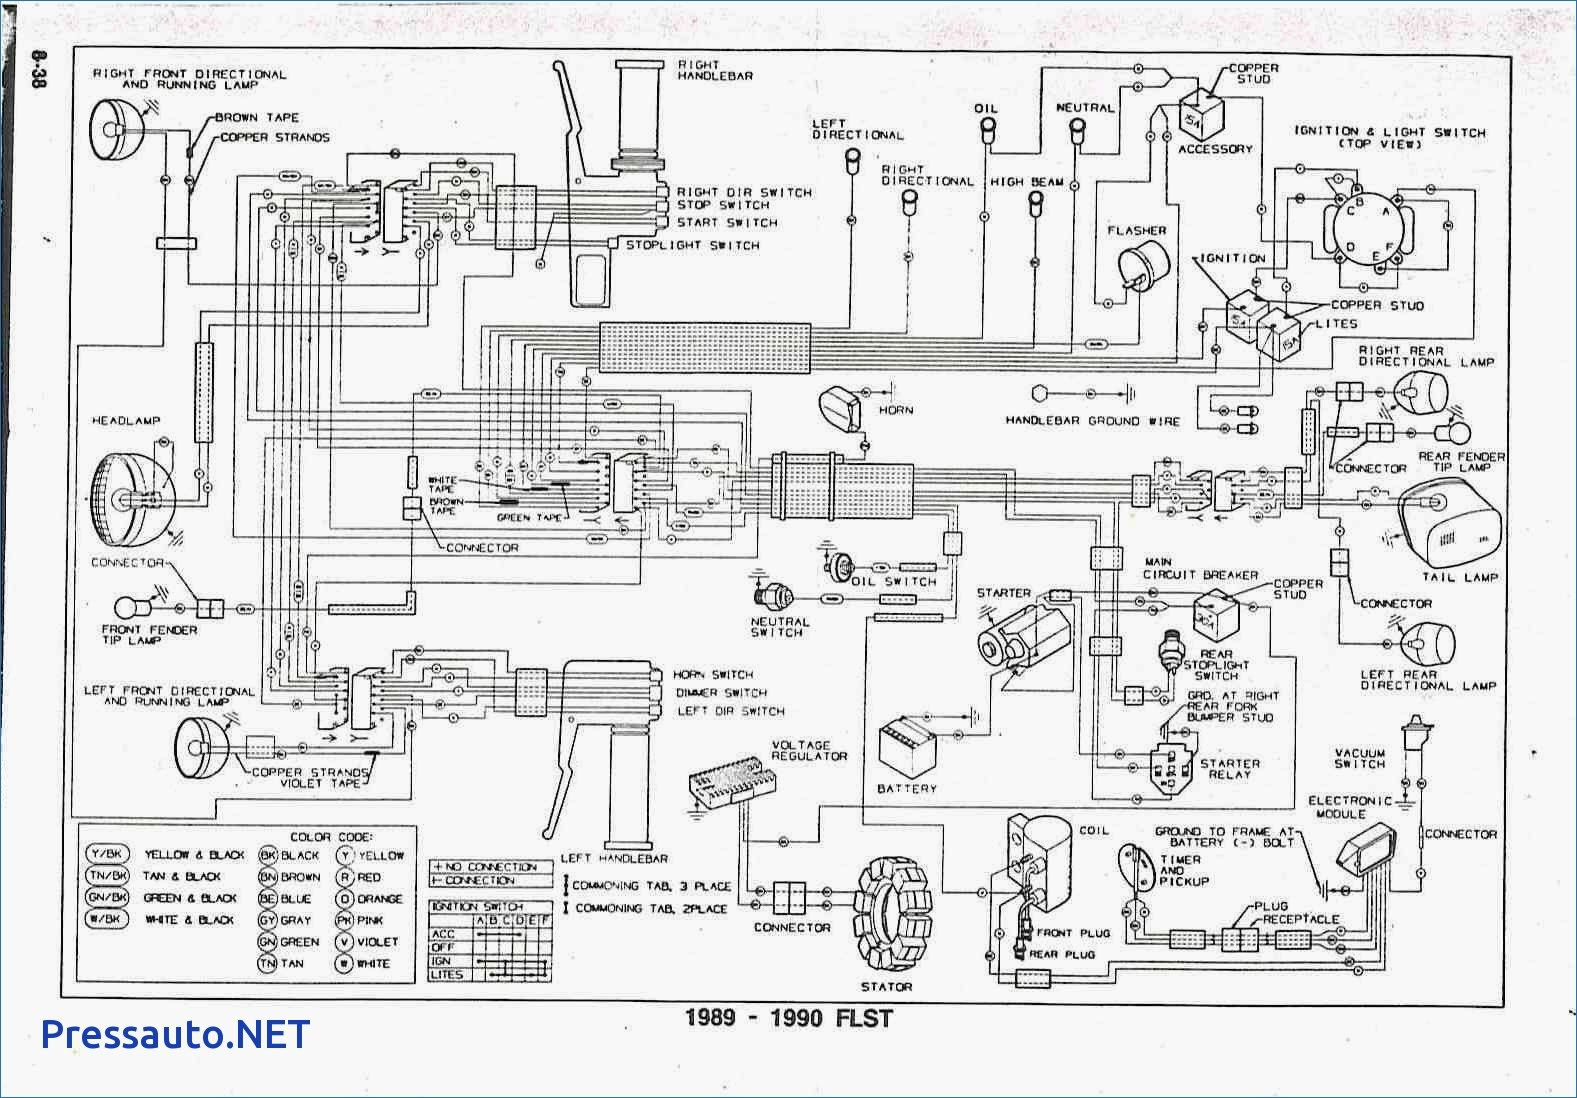 Wiring Diagram Harley Davidson Download Free Printable Of